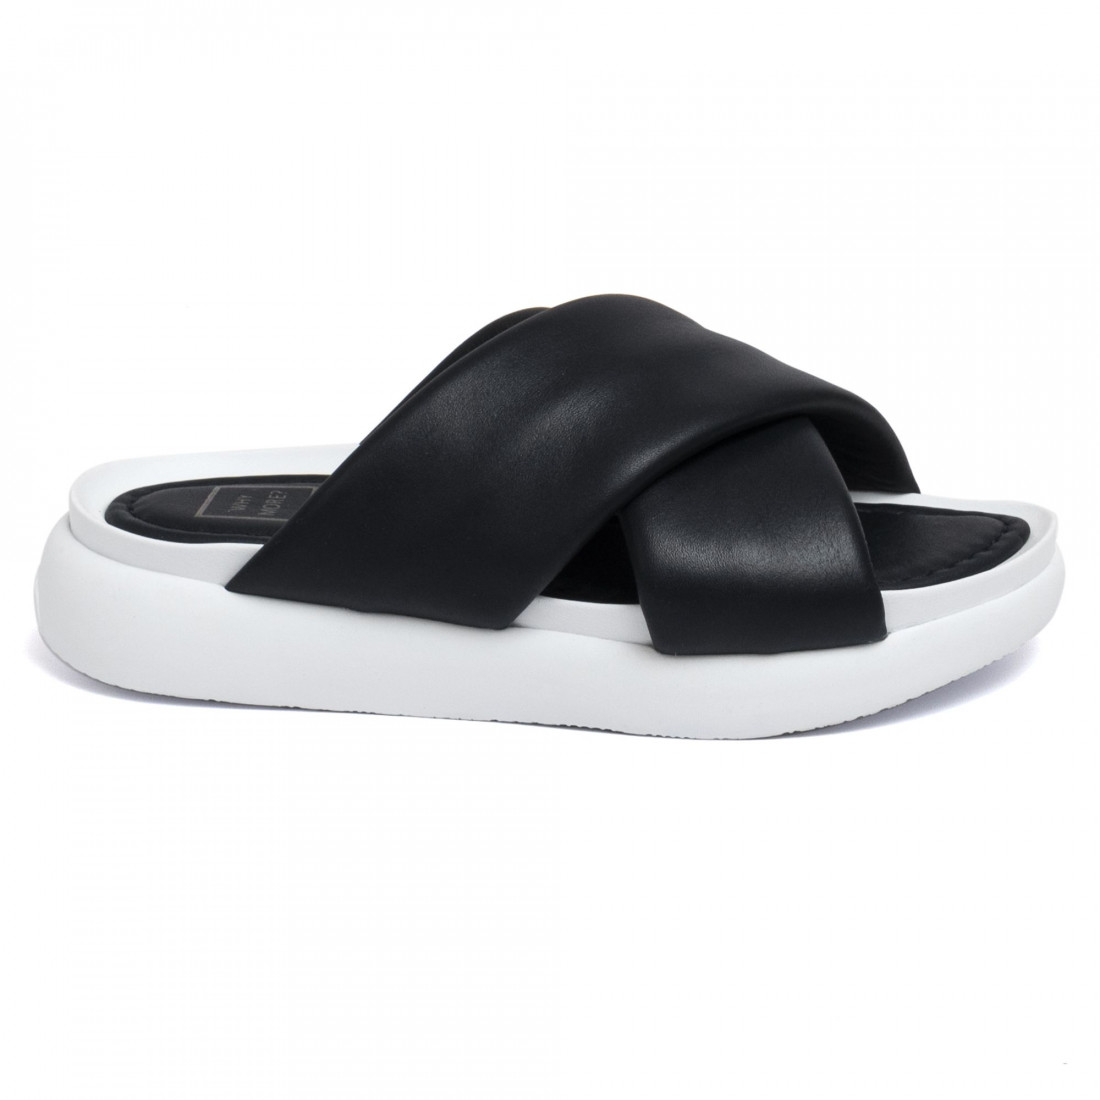 sandals woman why more 9097261 7356